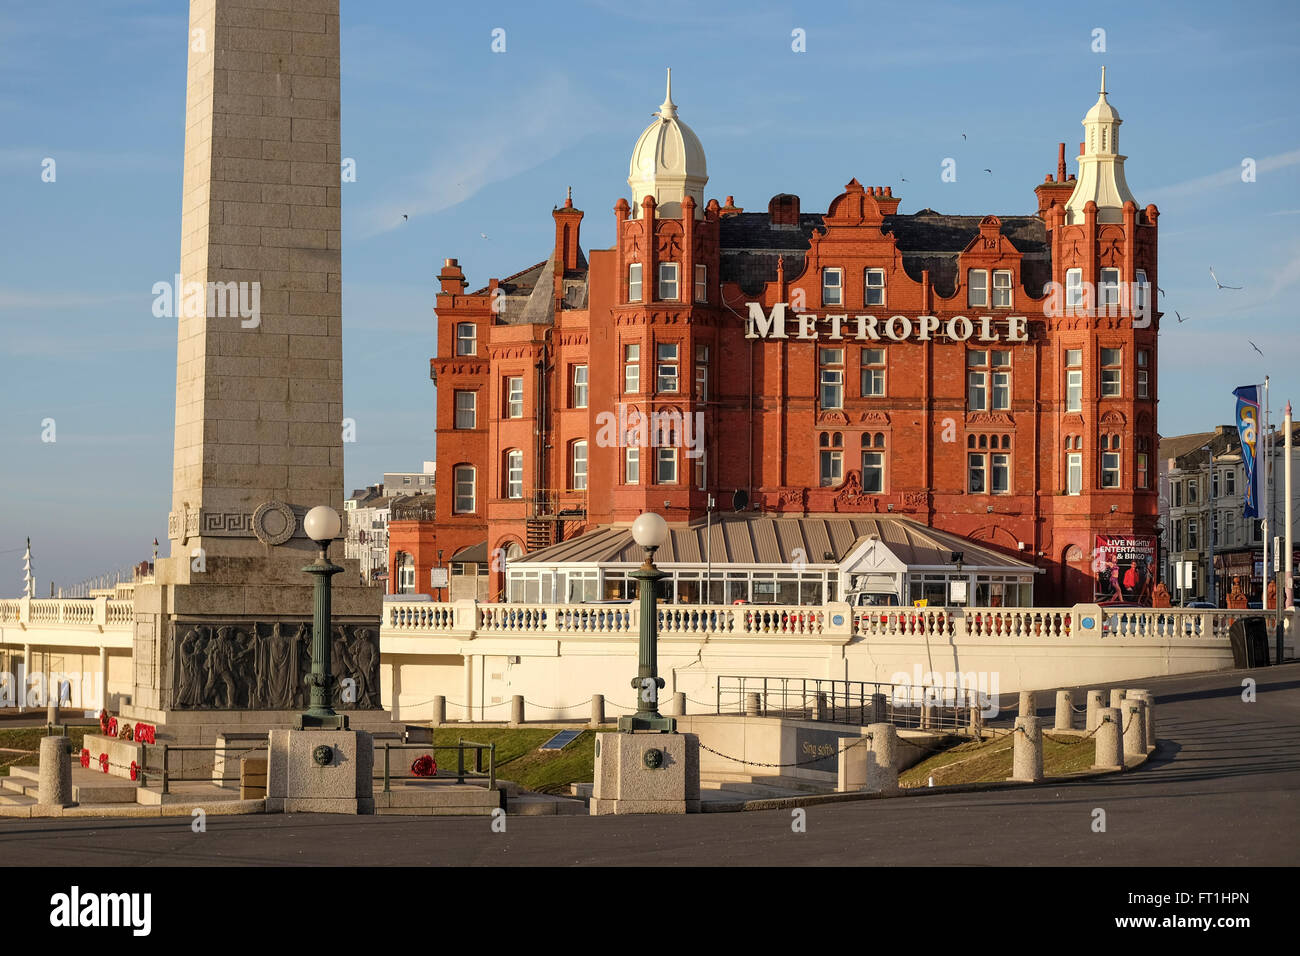 Das Metropole Hotel am Meer in Blackpool Stockbild